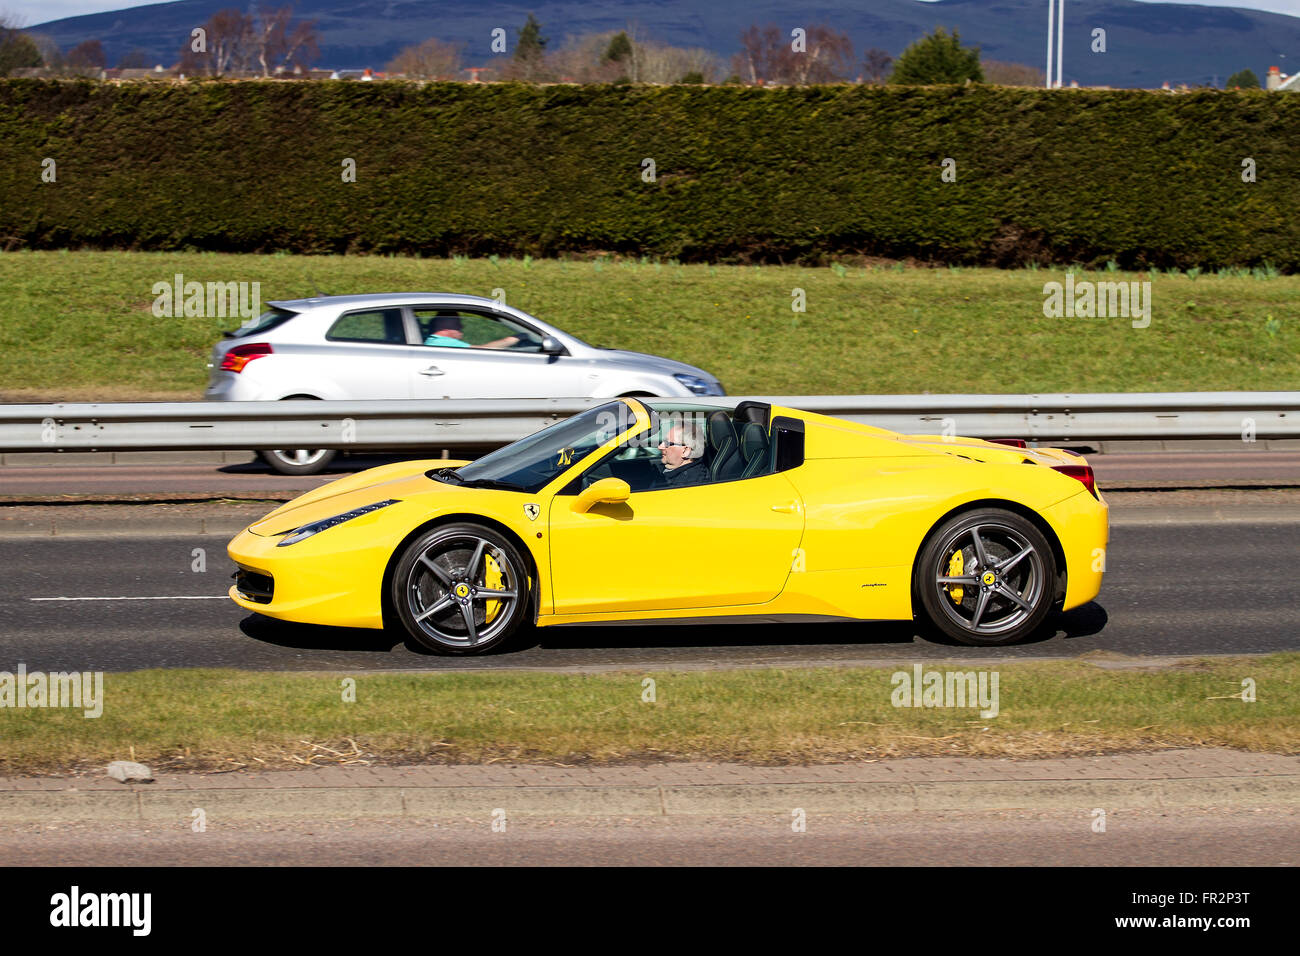 a yellow ferrari 458 italia spider convertible sports car travelling stock photo royalty free. Black Bedroom Furniture Sets. Home Design Ideas